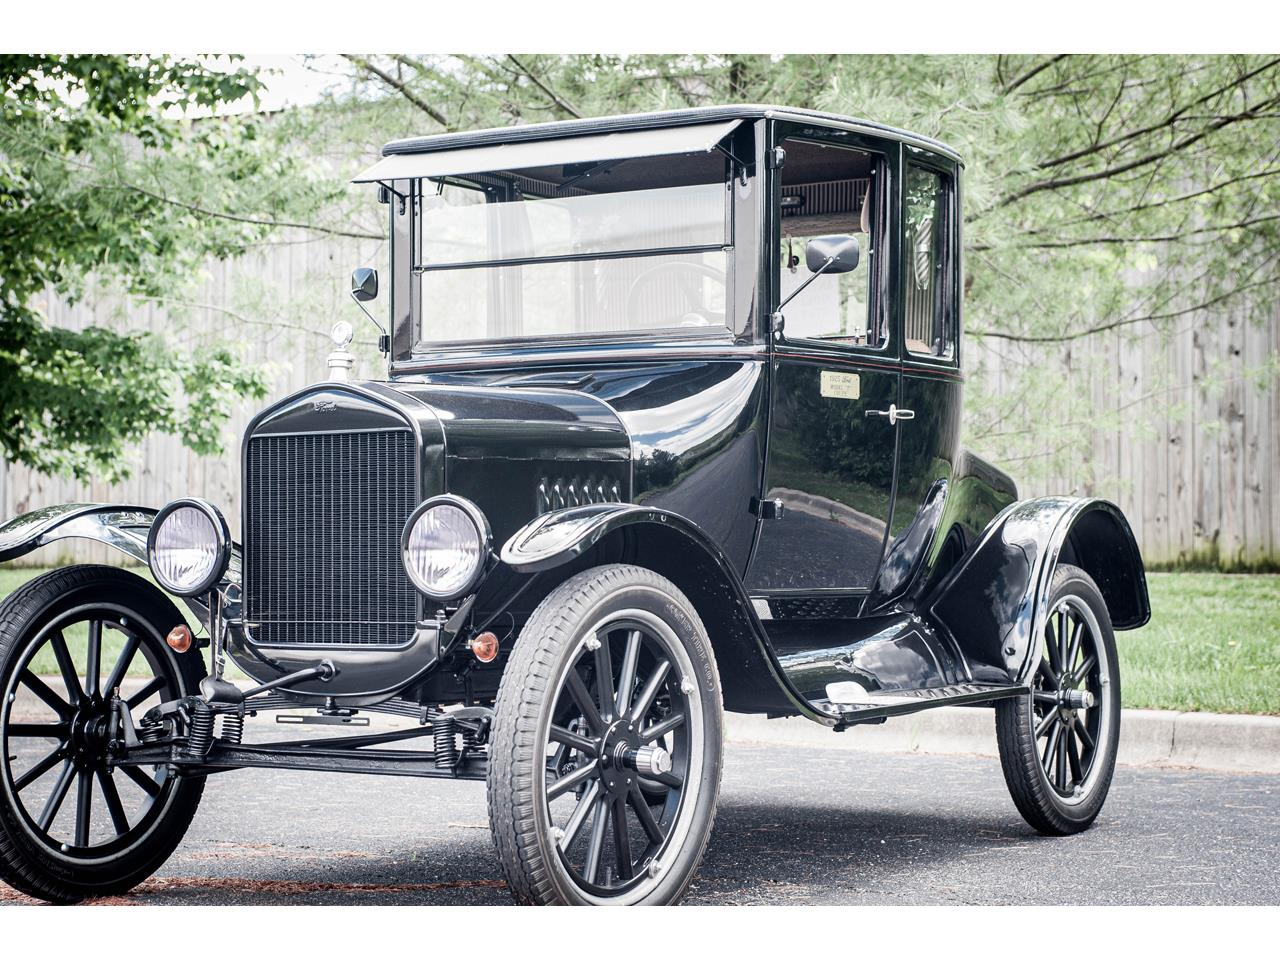 Large Picture of '25 Ford Model T located in Illinois - $18,000.00 Offered by Gateway Classic Cars - St. Louis - QB96